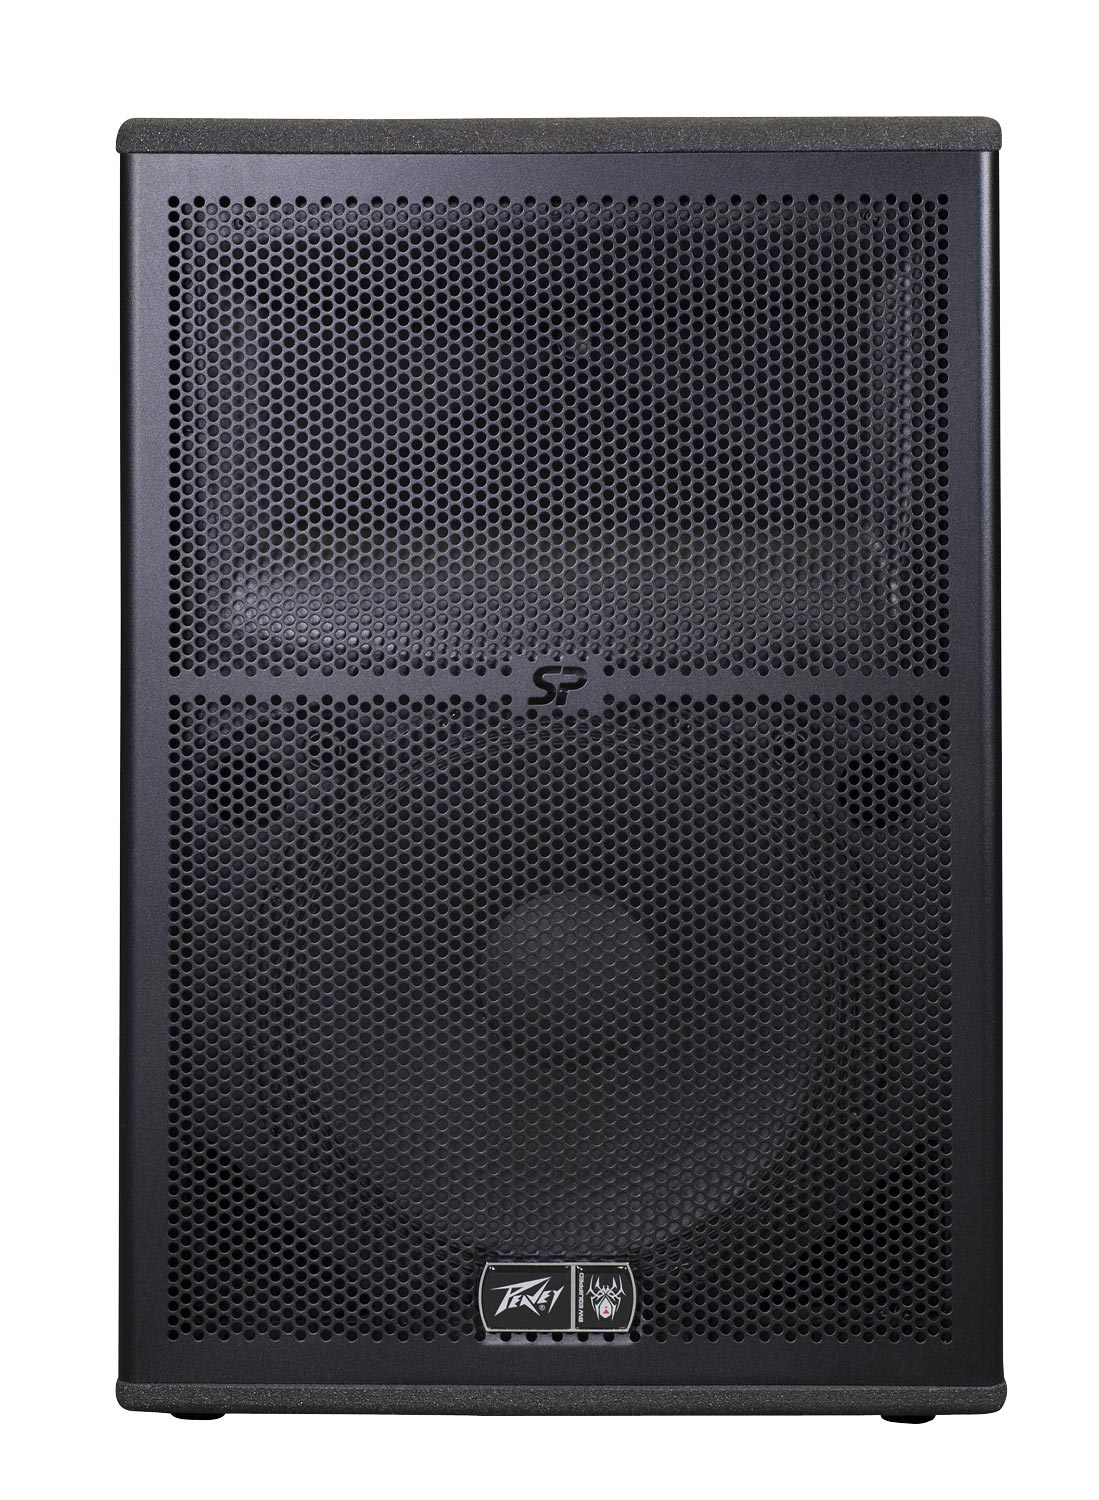 peavey sp 2bx 2000w 2 way full range bi amp sound system w. Black Bedroom Furniture Sets. Home Design Ideas